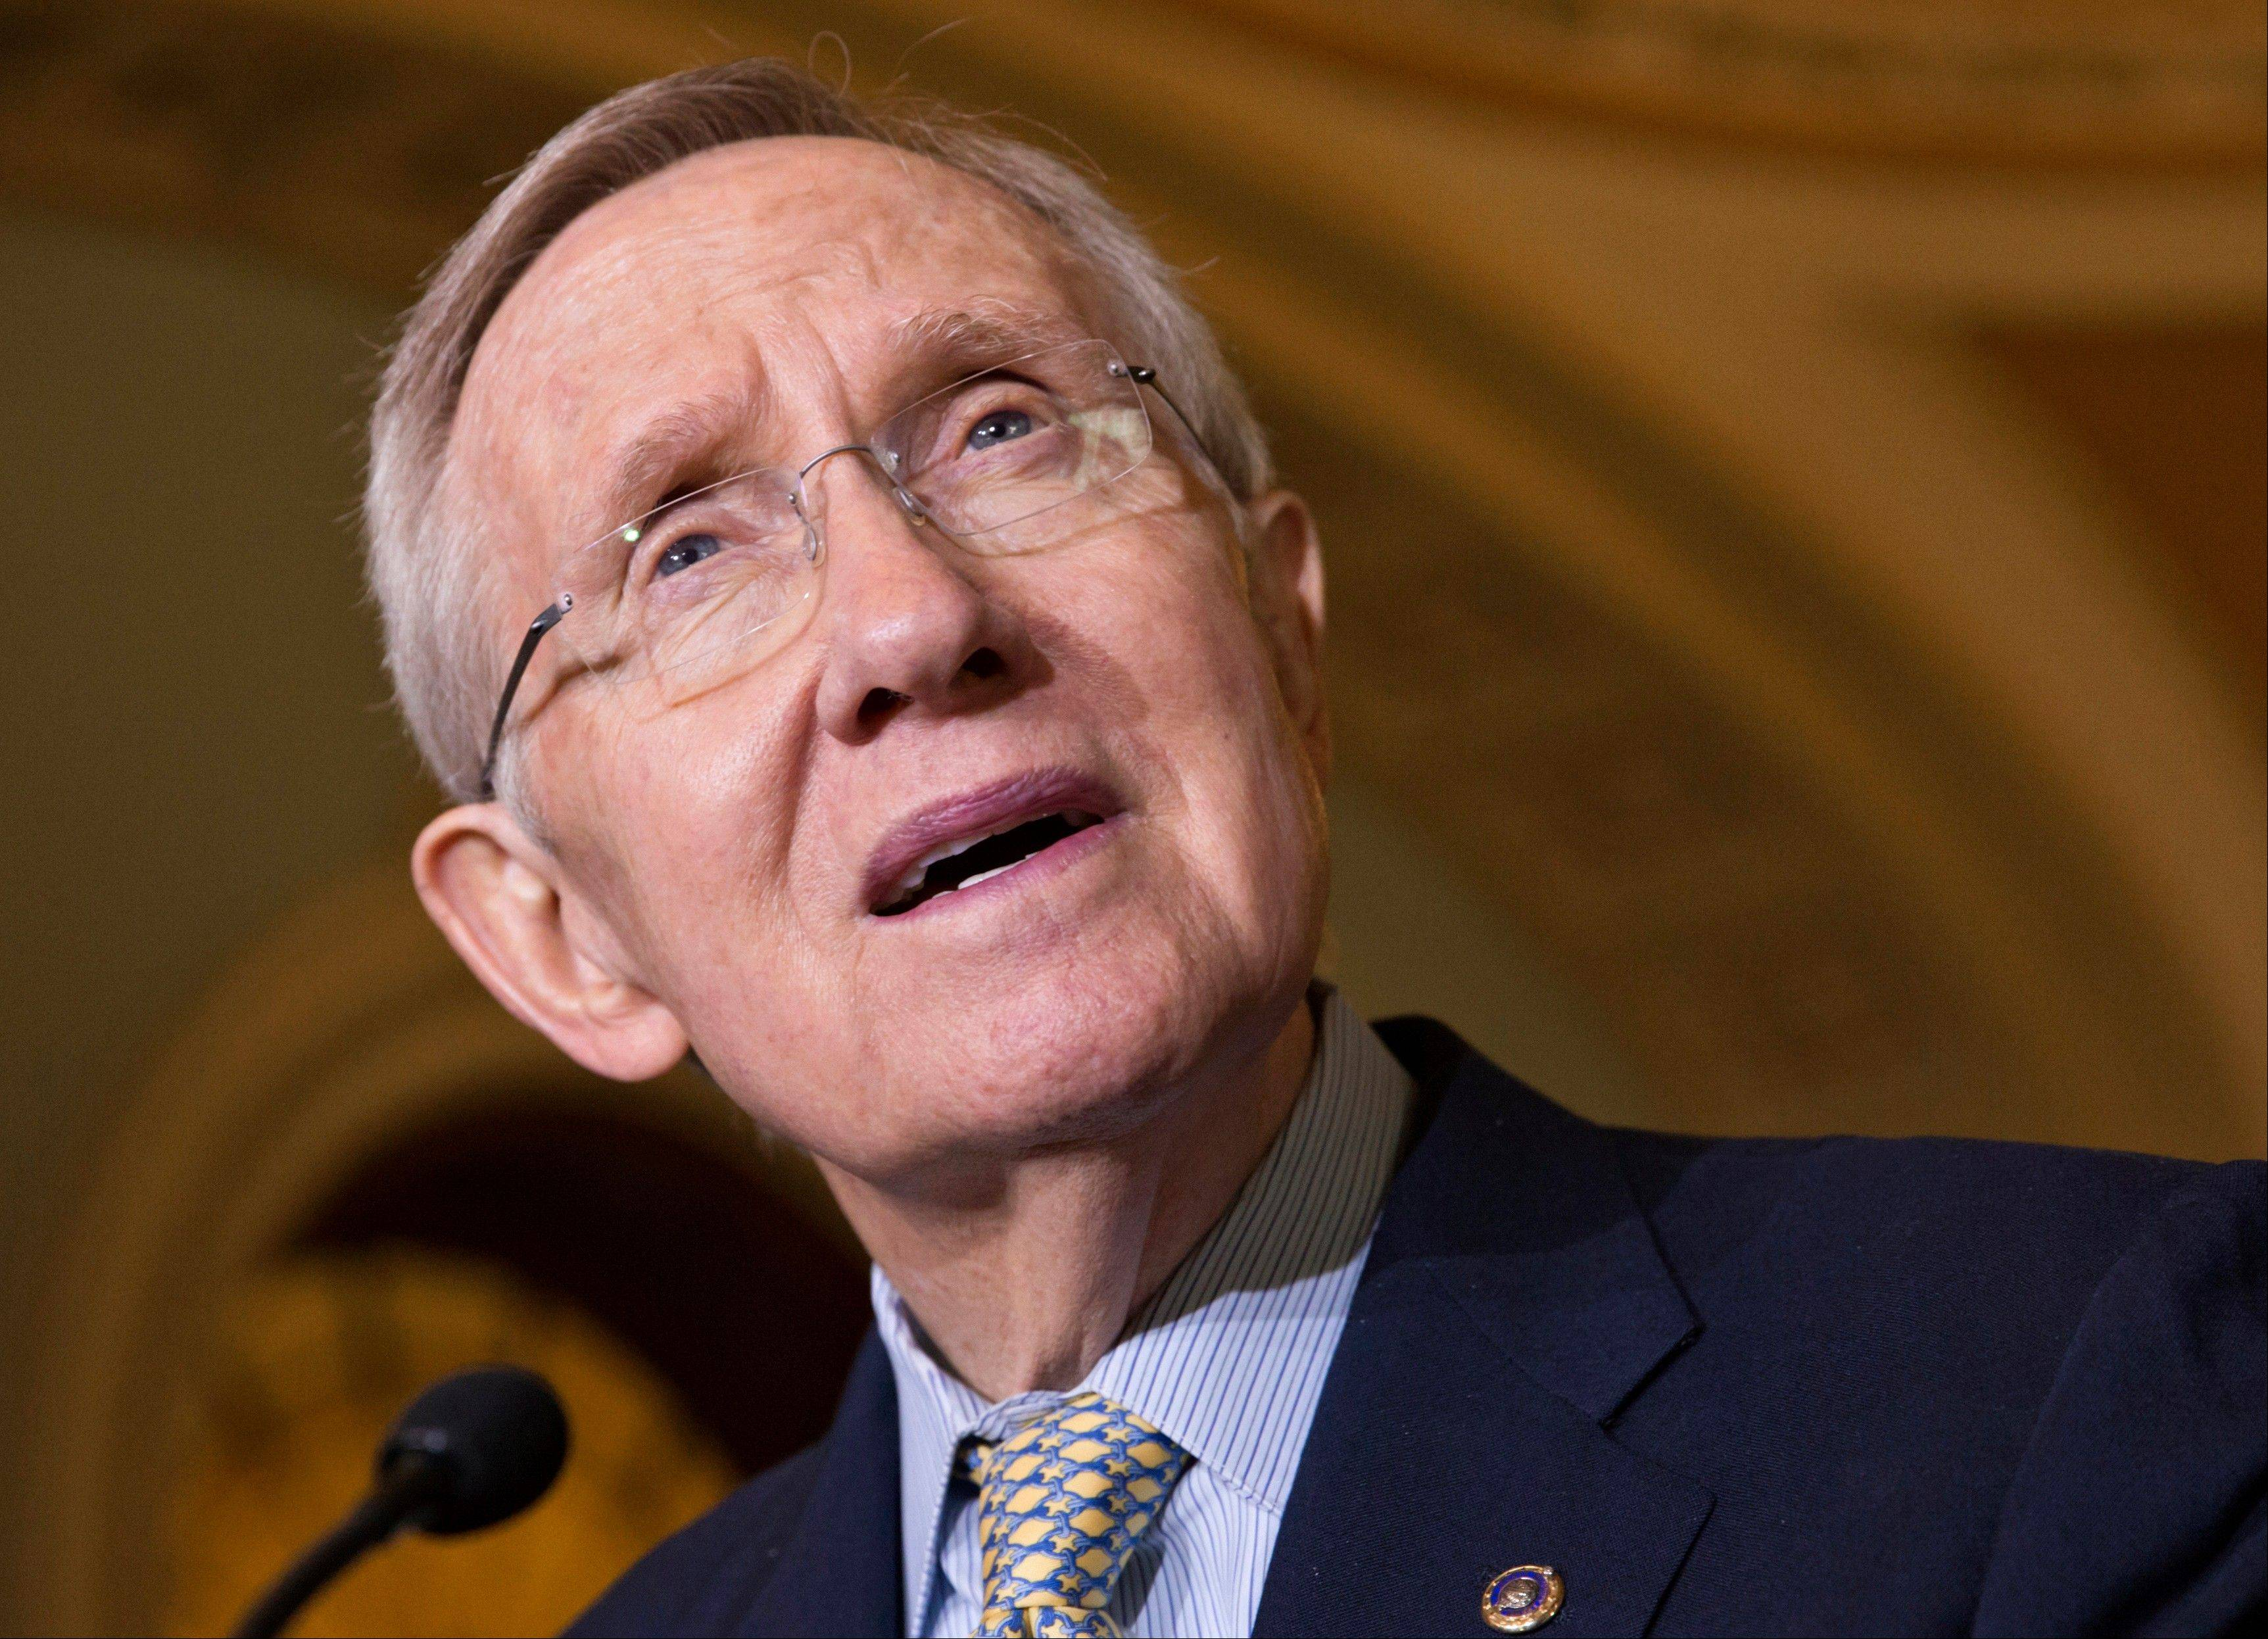 Senate Majority Leader Harry Reid, D-Nev., blasted House Speaker John Boehner for his insistence that legislation barring workplace discrimination against gays would lead to costly, frivolous lawsuits and undermine job creation. �Coming from the man whose caucus spent $3 million in taxpayer dollars defending the unconstitutional Defense of Marriage law in court, that�s pretty rich,� said Reid.